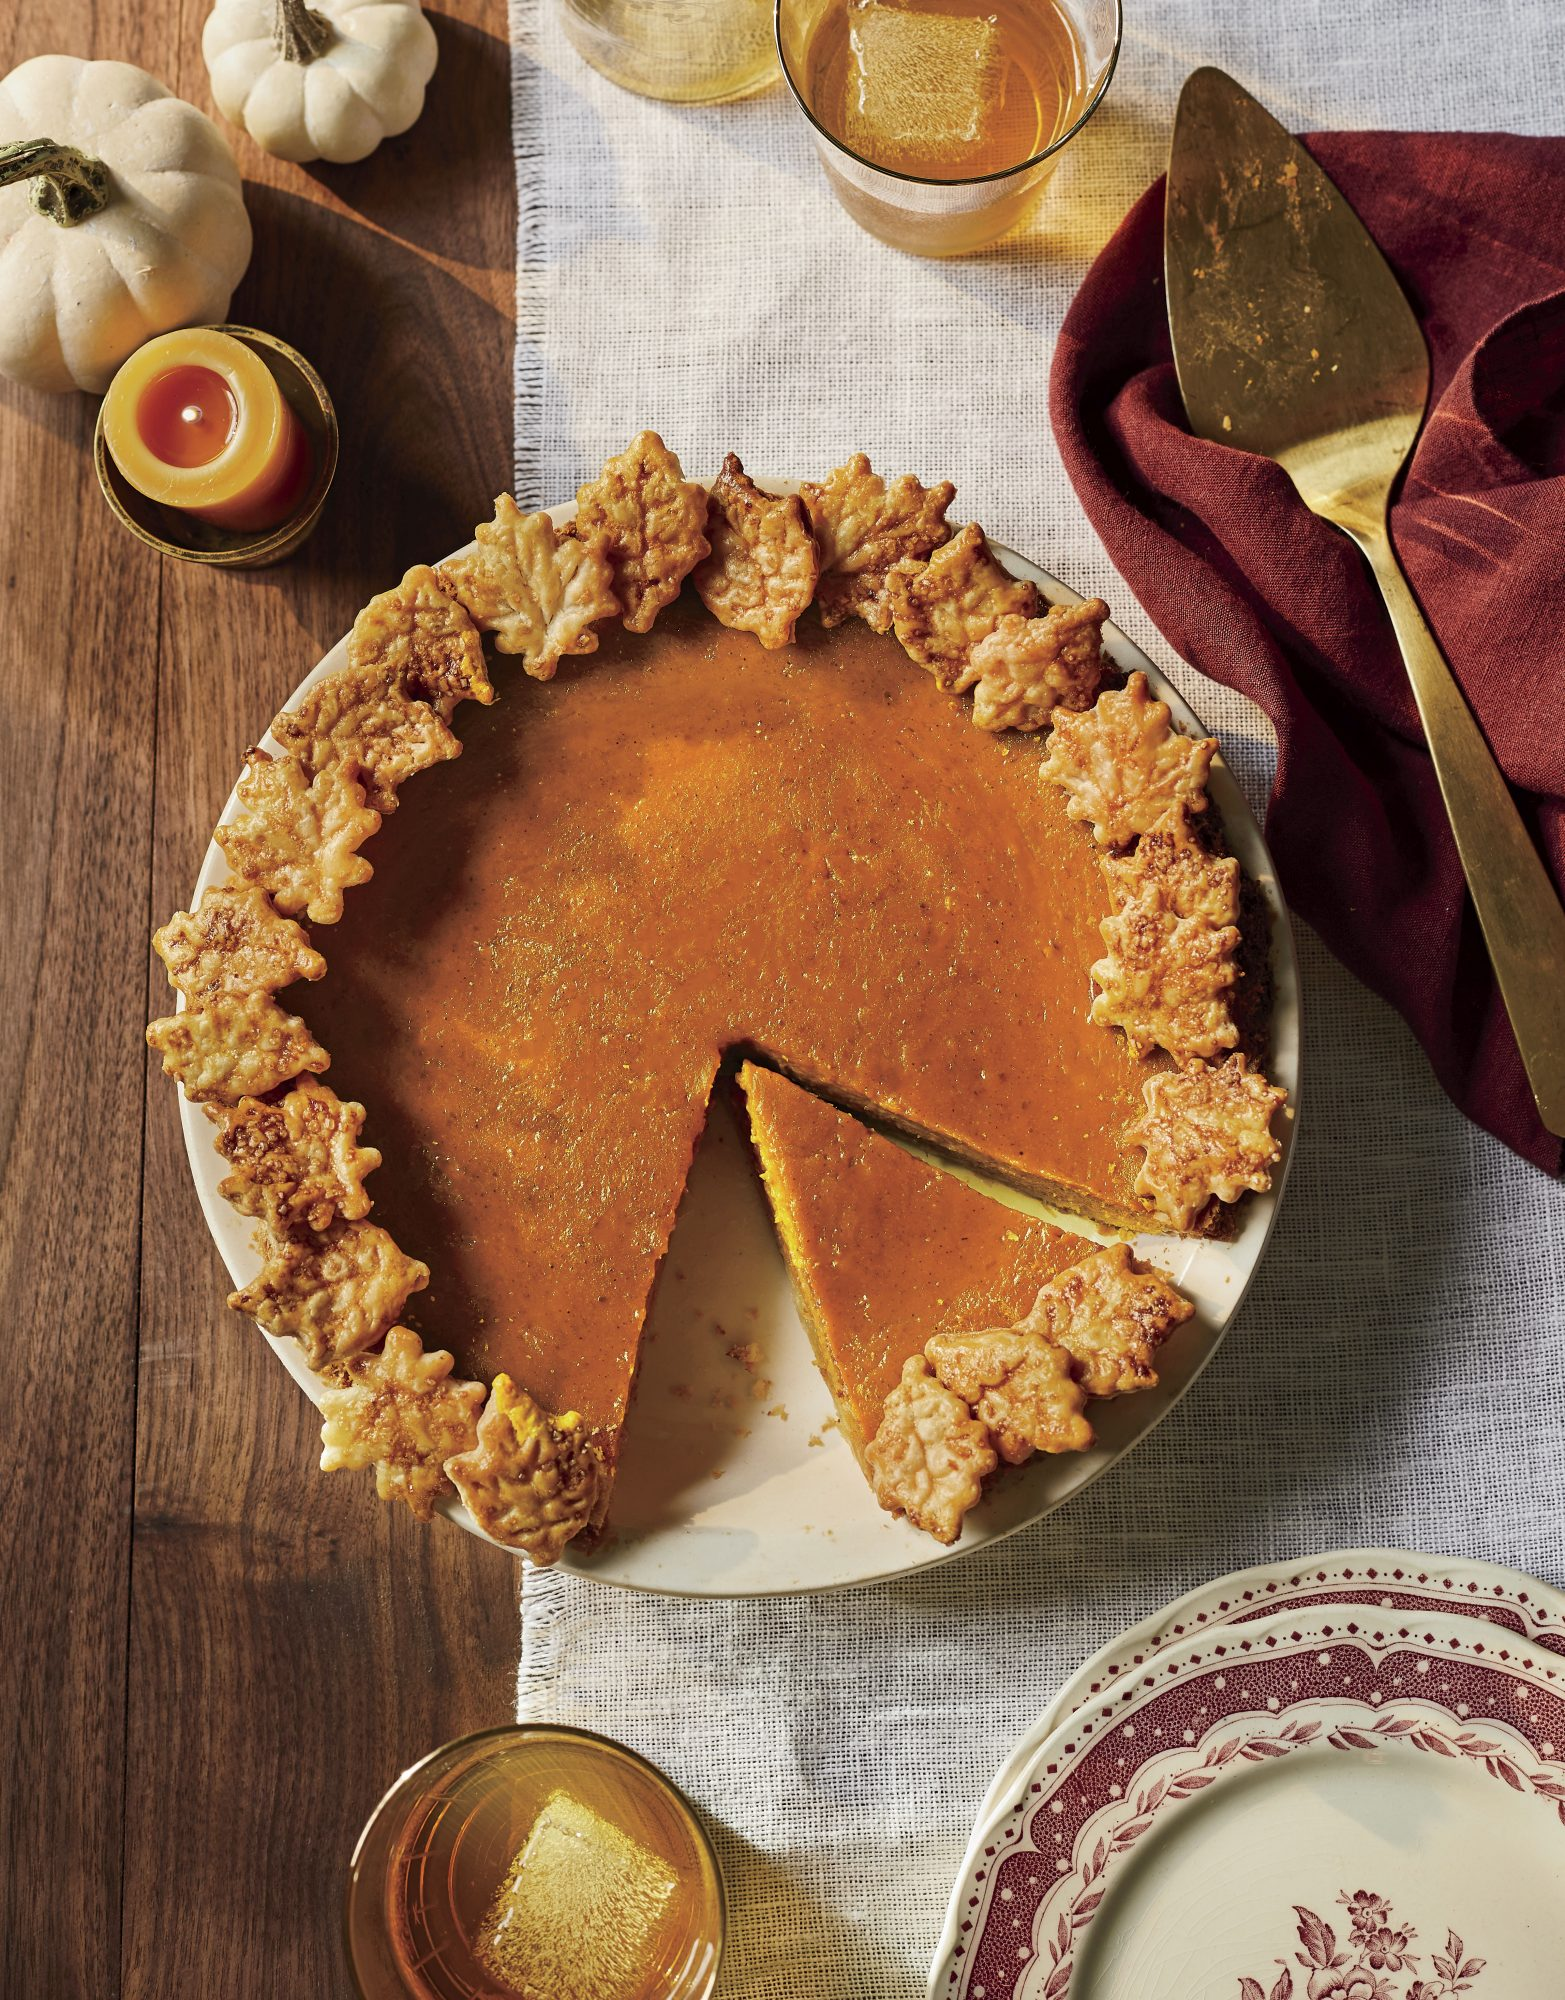 Back in the Day Bakery Southern Pumpkin Pie